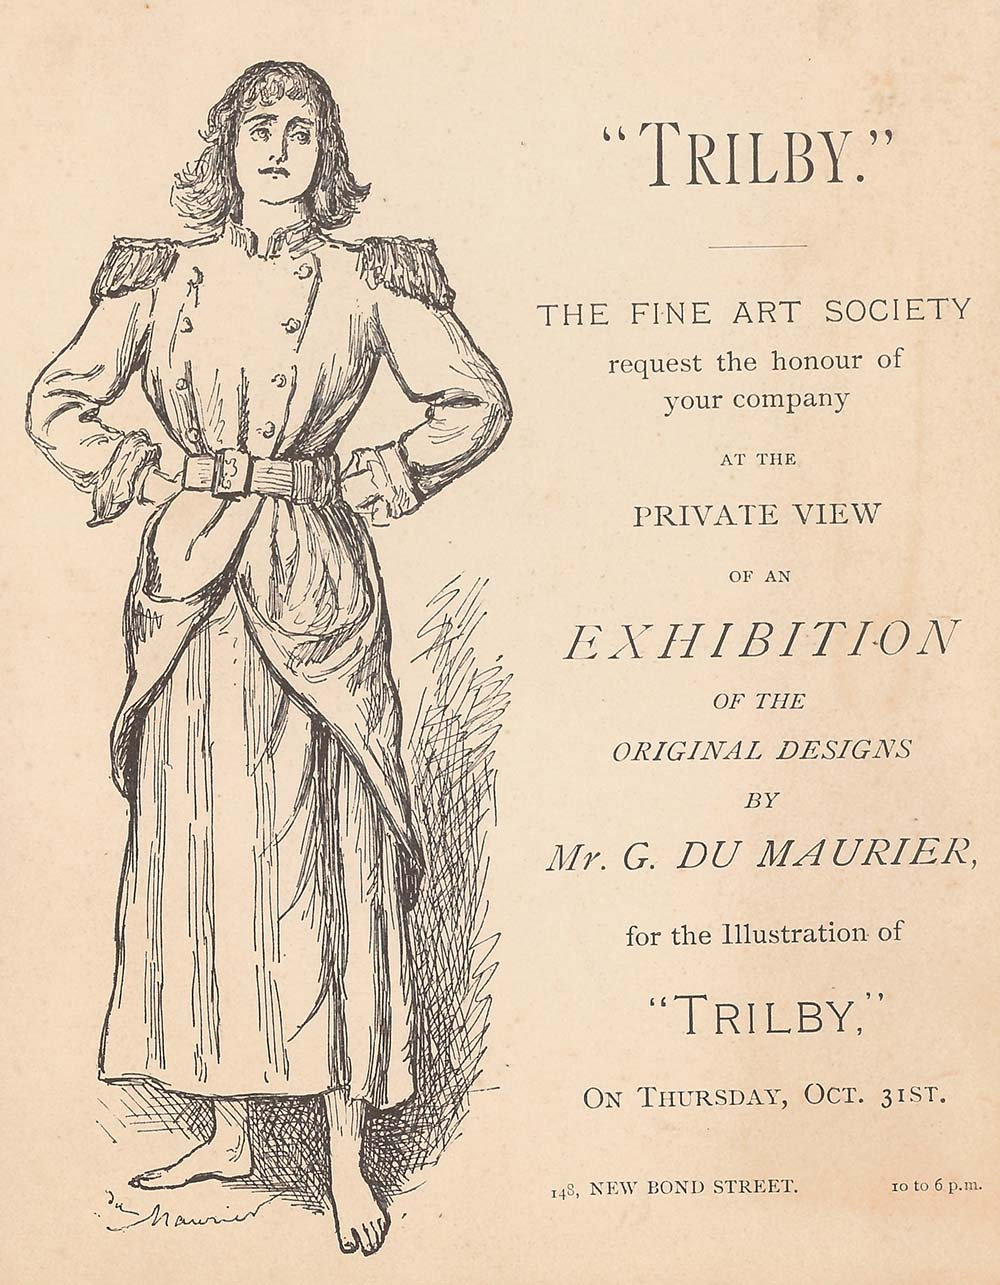 Invitation to an exhibition of illustrations by George du Maurier for his Gothic novel, Trilby, featuring an illustration of a woman